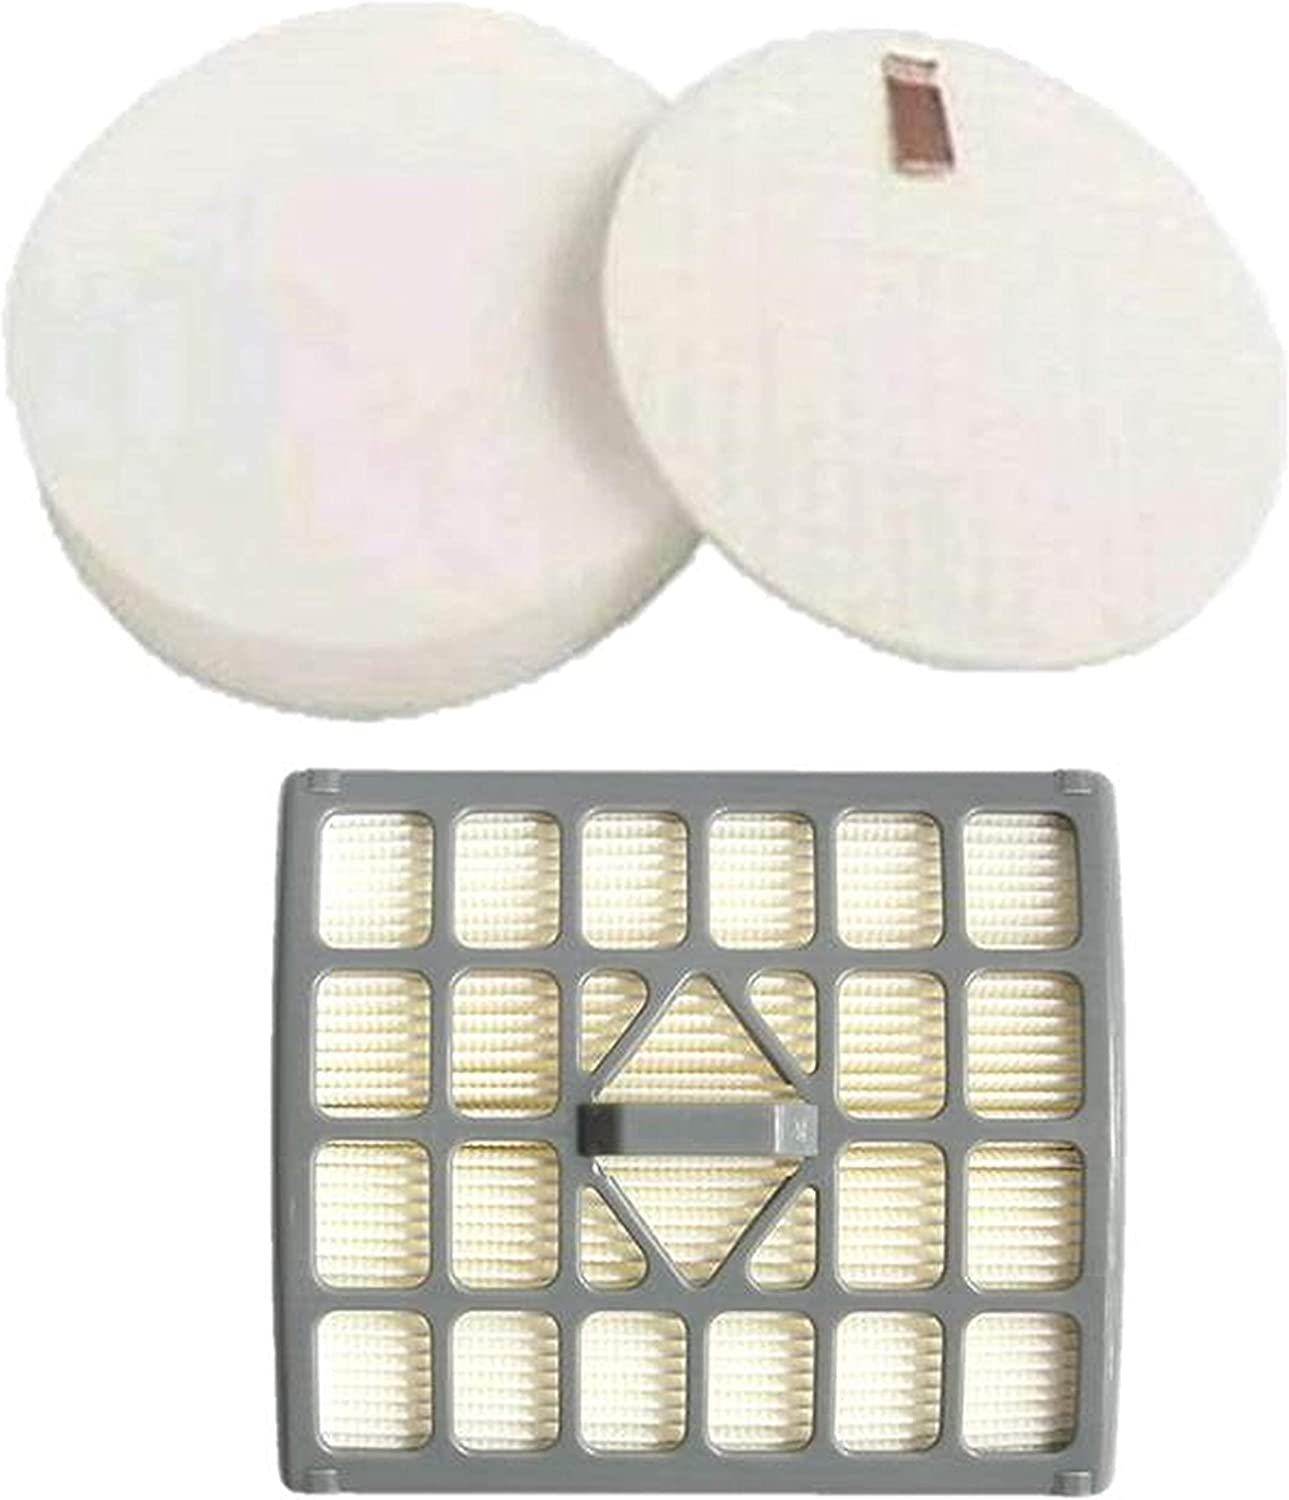 Casa Vacuums Replacement Shark Rotator Slim-Light Lift-Away Filter Kit for NV341 & NV341Q. Compare to Part # 1229FC340 & XHF340